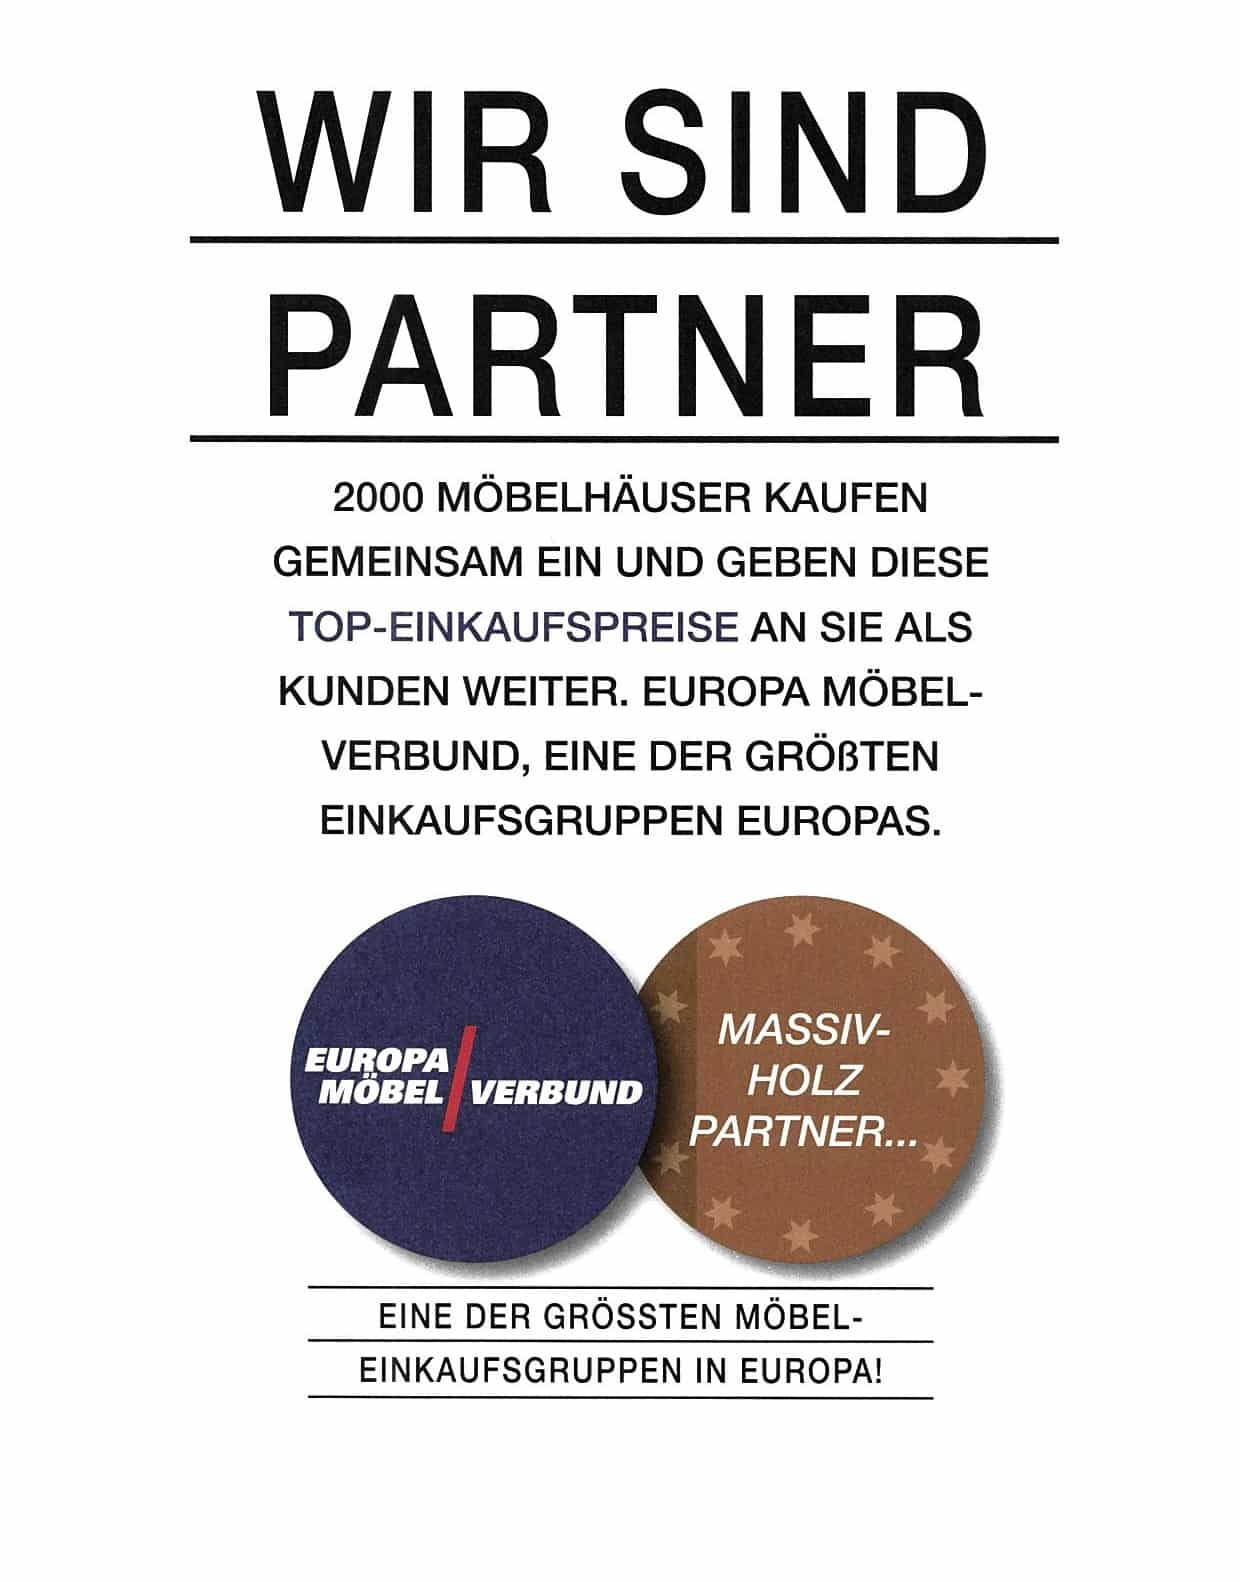 Moebel-partner Nld Autor Bei Käppler